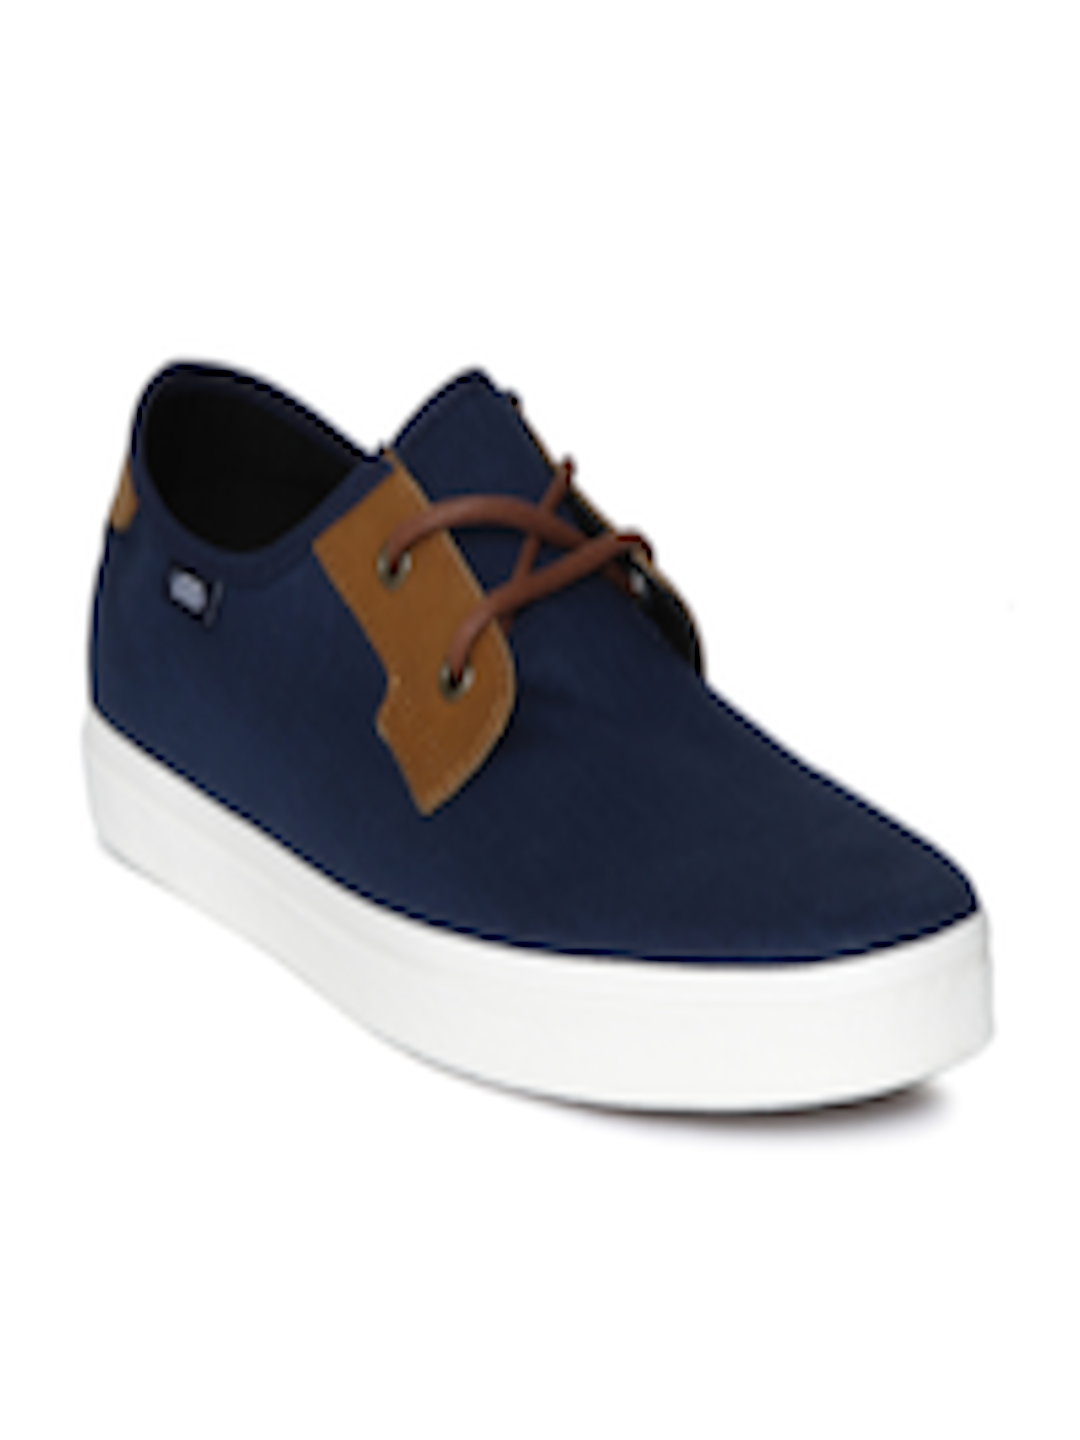 a4c809b6890d Buy Vans Men Navy Blue   Brown Colourblocked MICHOACAN SF Sneakers - Casual  Shoes for Men 1772956